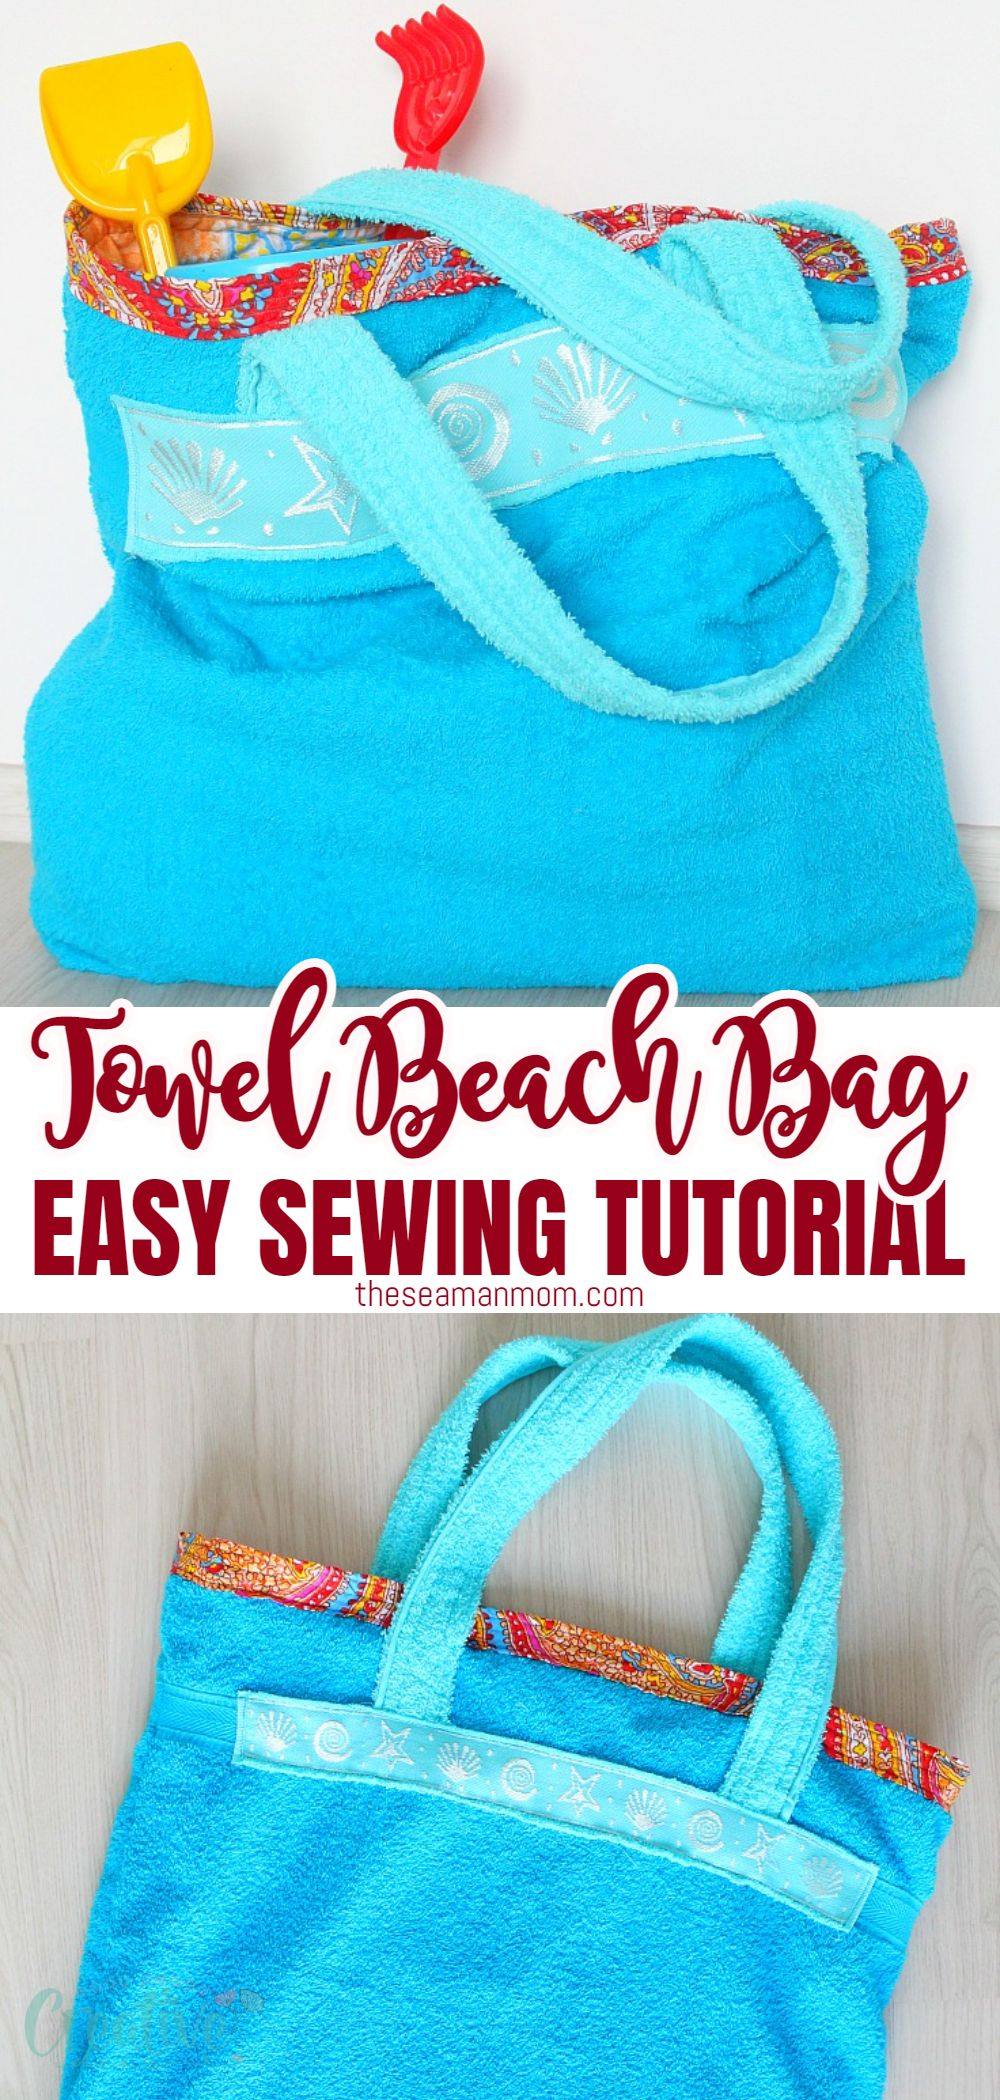 Turn an old towel into a cute and roomy tote bag with this super easy tutorial for a towel bag. Perfect not only for the beach season, this roomy towel beach bag is a great help for when you need to carry lots of items because it's so comfortable to wear on your shoulder! via @petroneagu